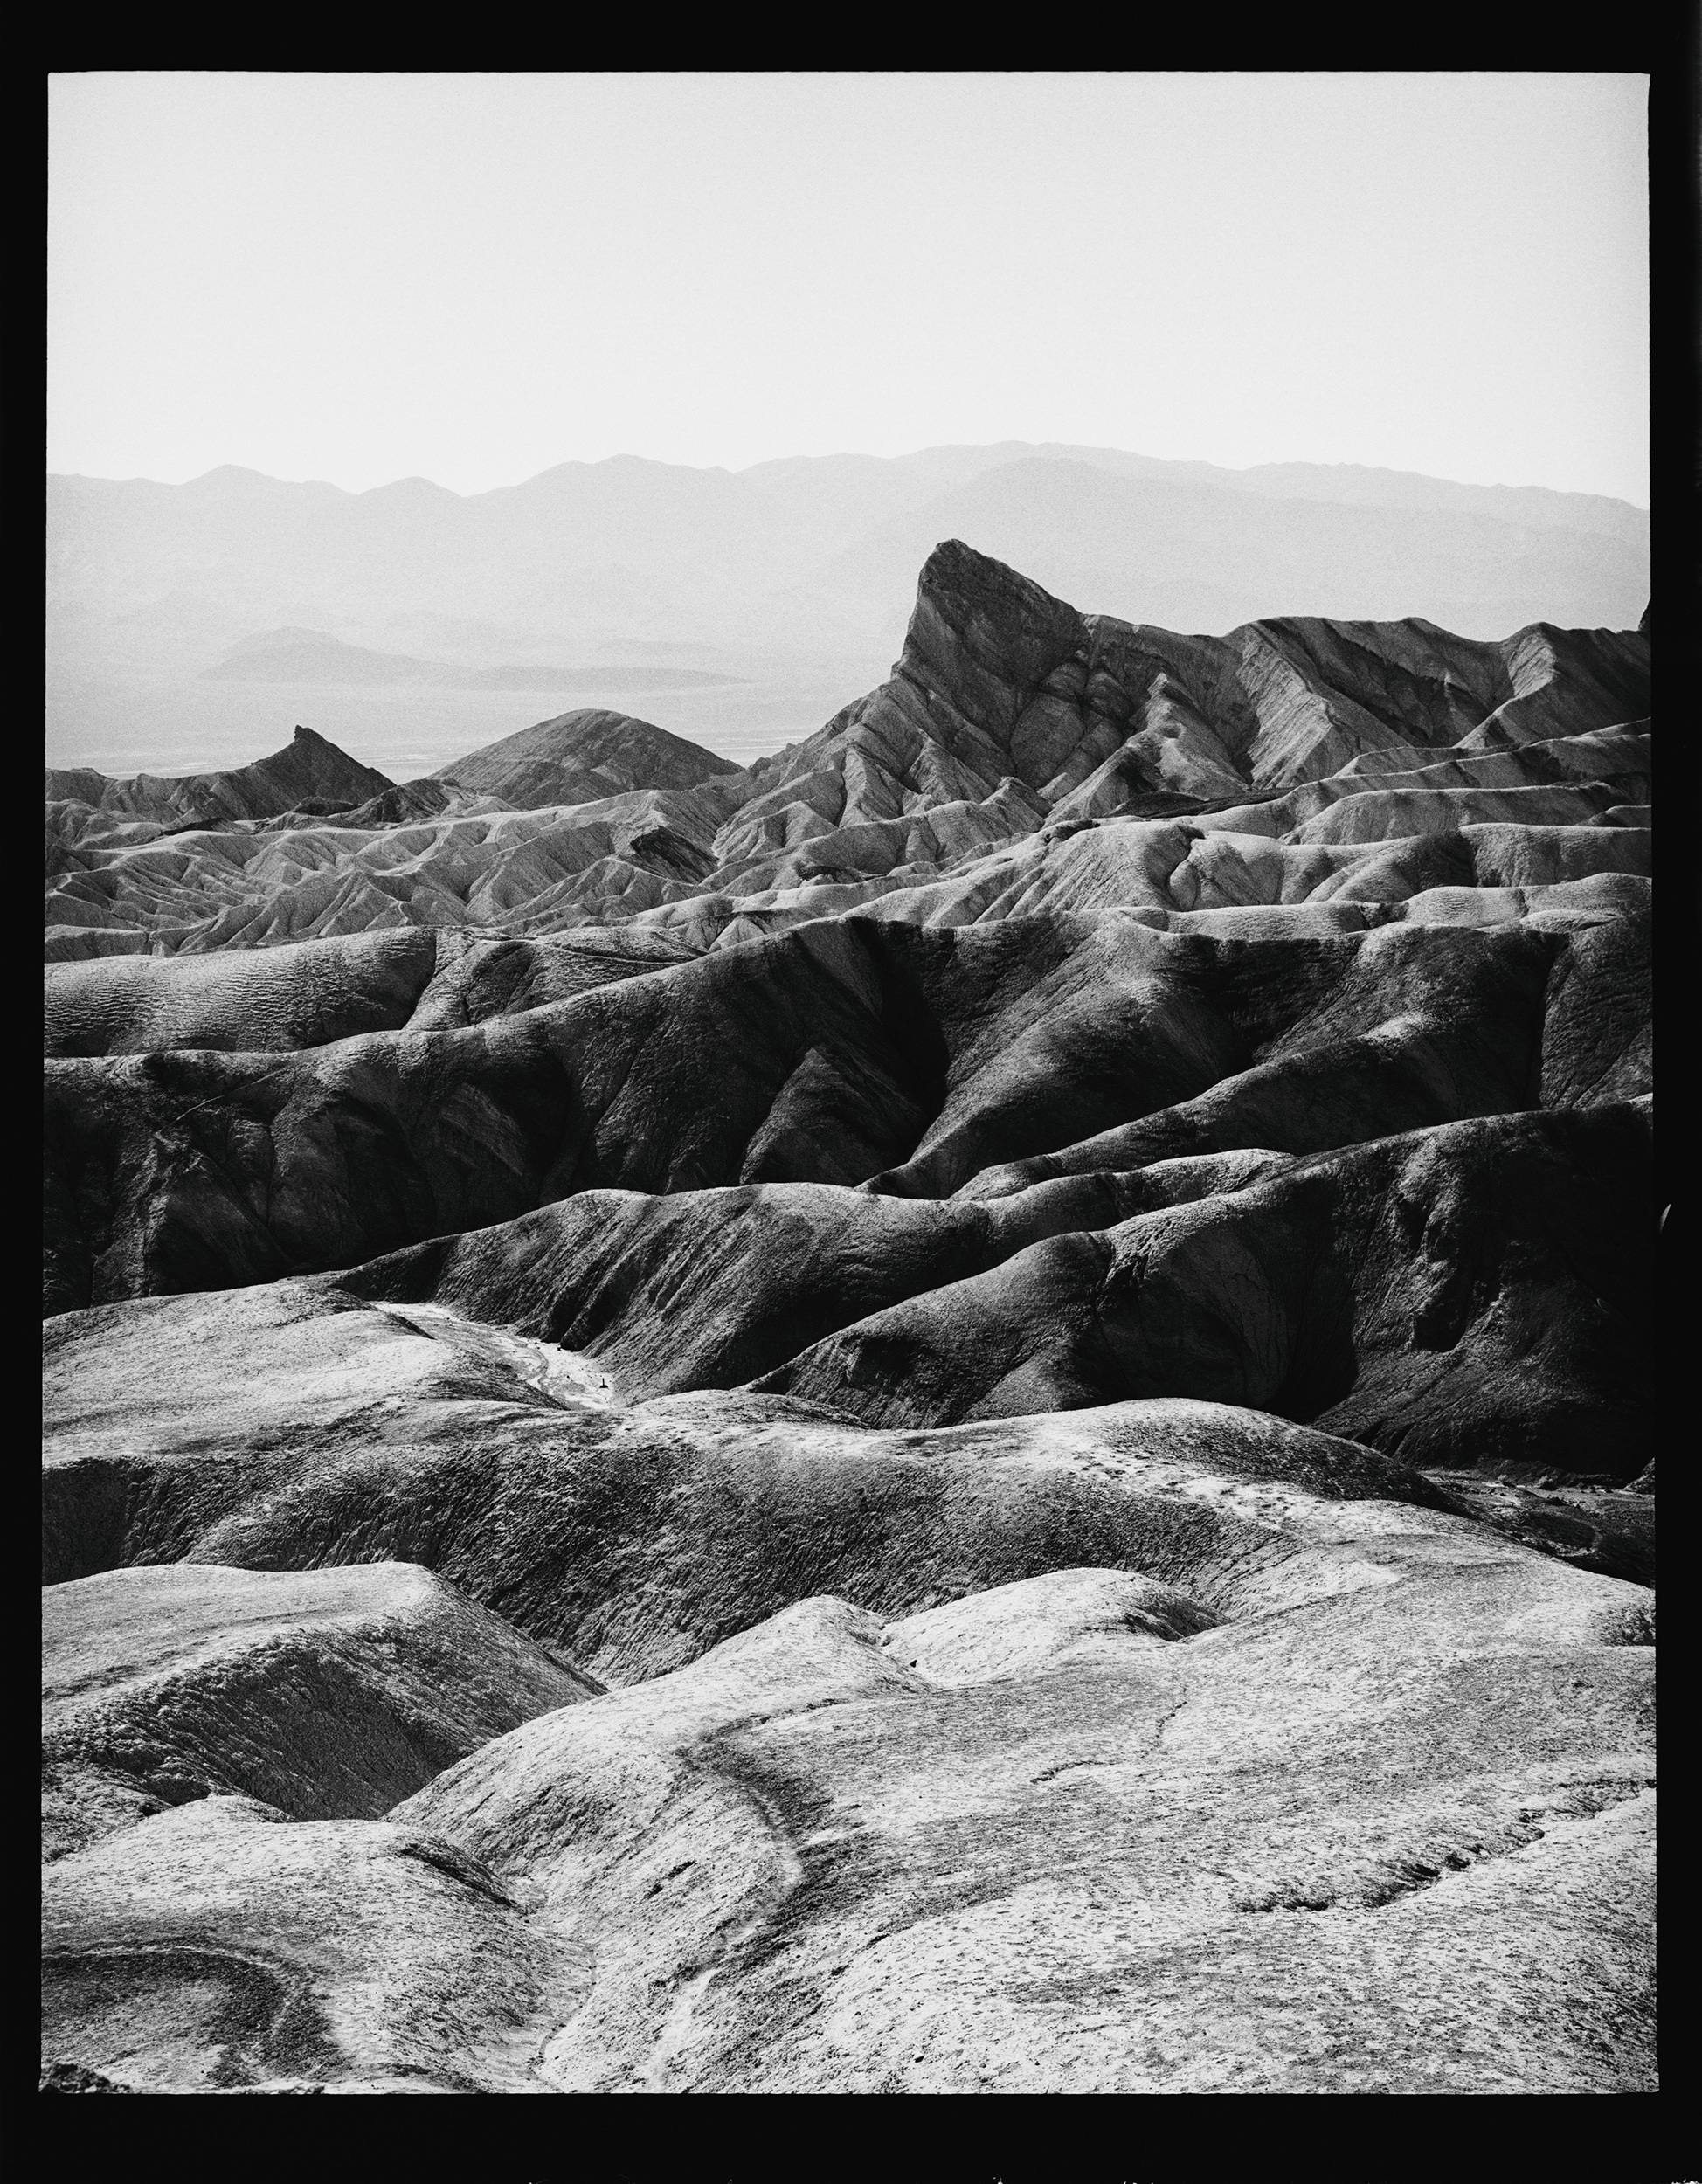 Zabriskie_Point_Fine_Art_Landscape_Photographer_Julien_Balmer.jpg